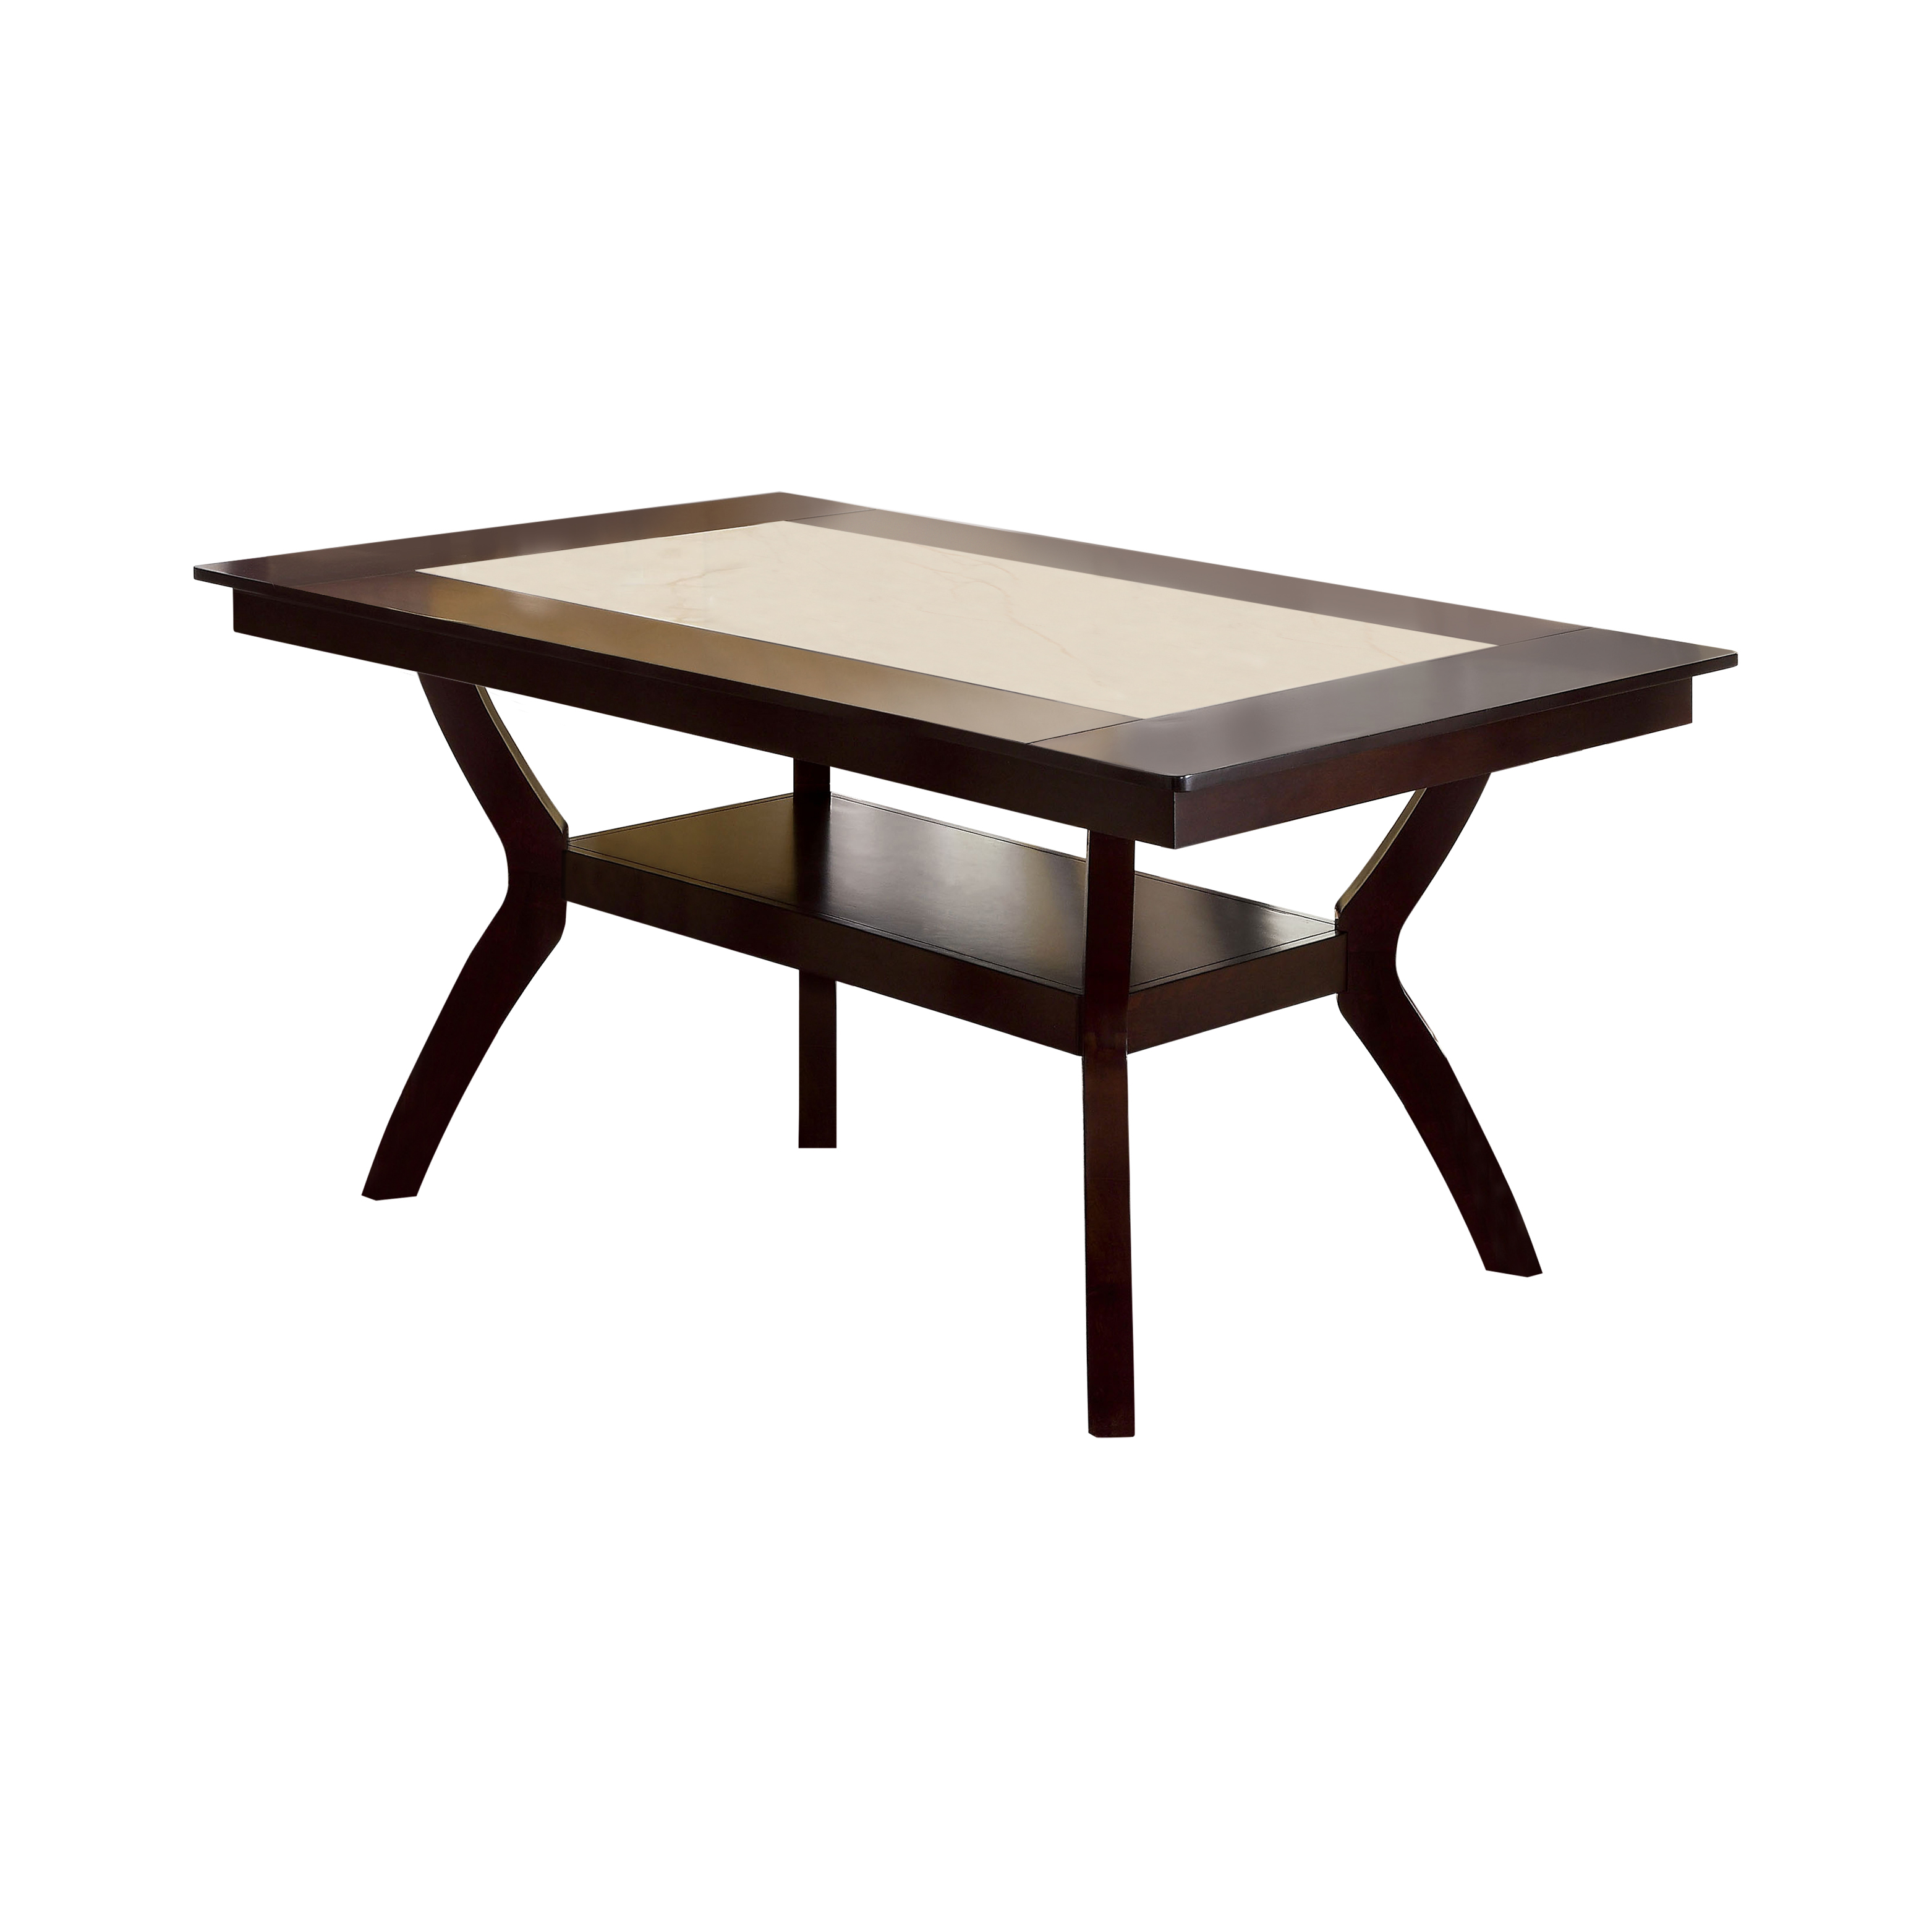 Furniture Of America Mullican Counter Height Display Top Dining Table    Dark Cherry U0026 Ivory | Hayneedle